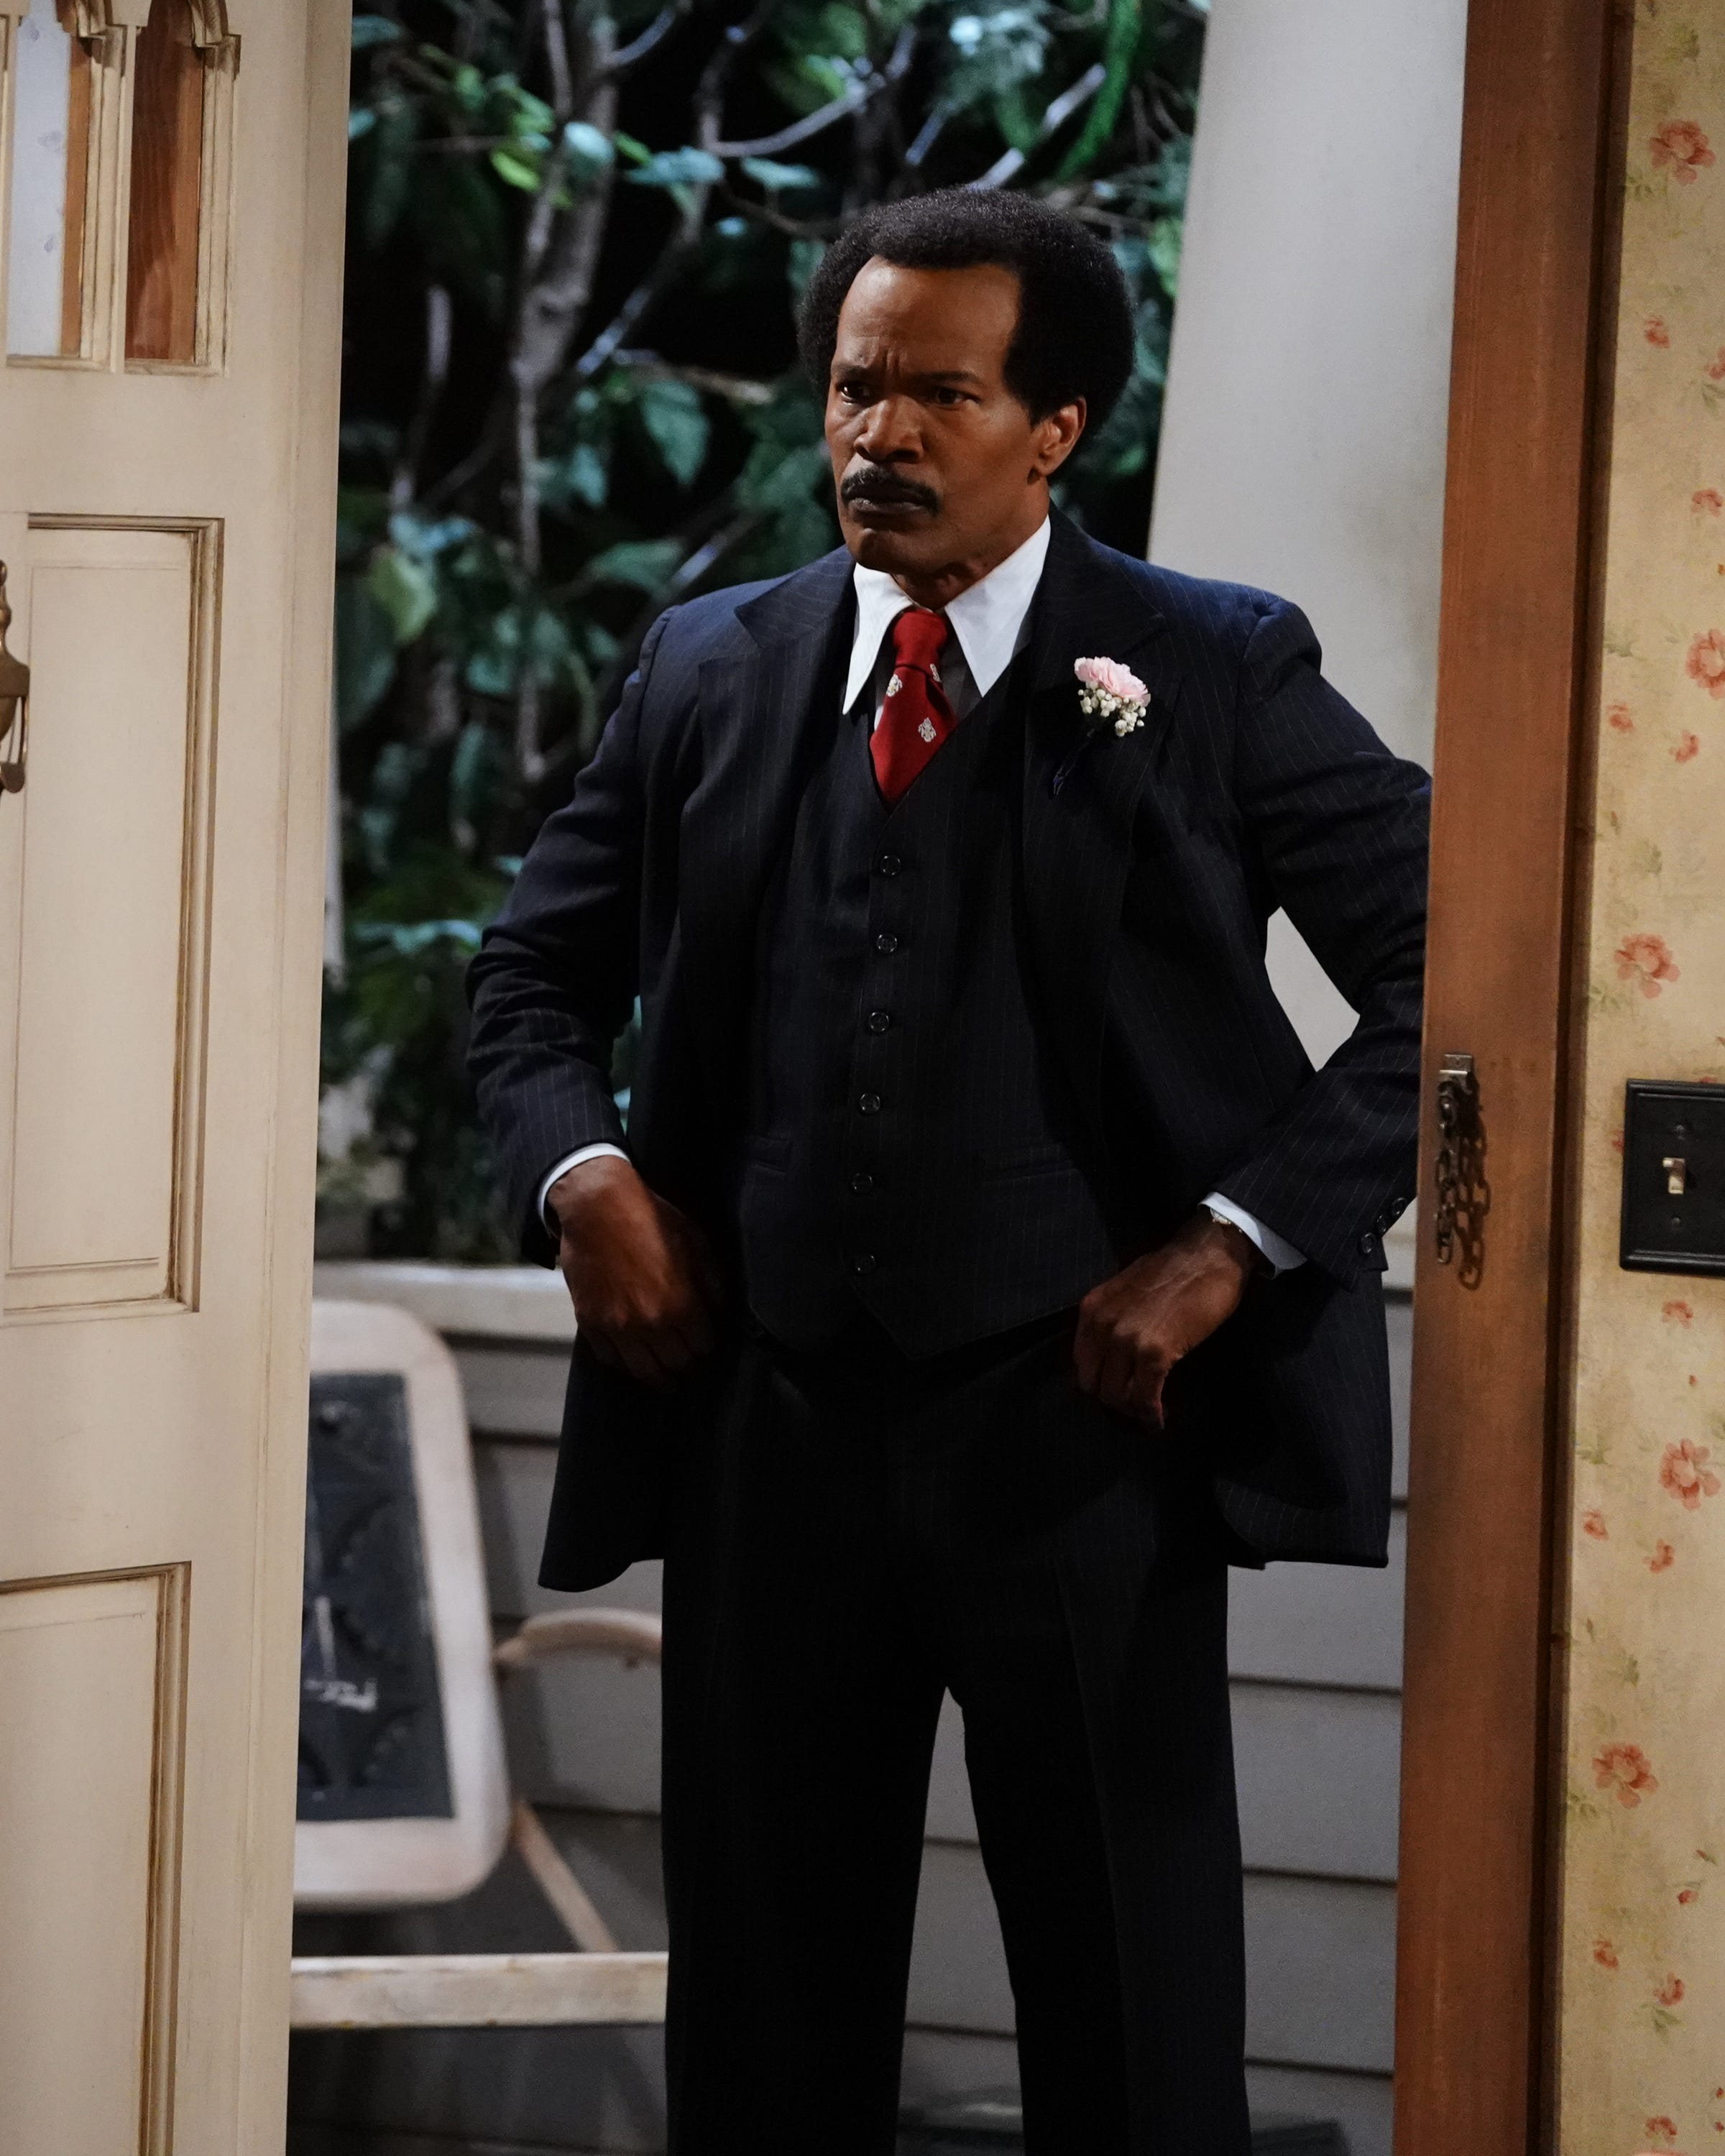 Jamie Foxx Broke Character During Live Sitcom Performance & The Audience Loved It